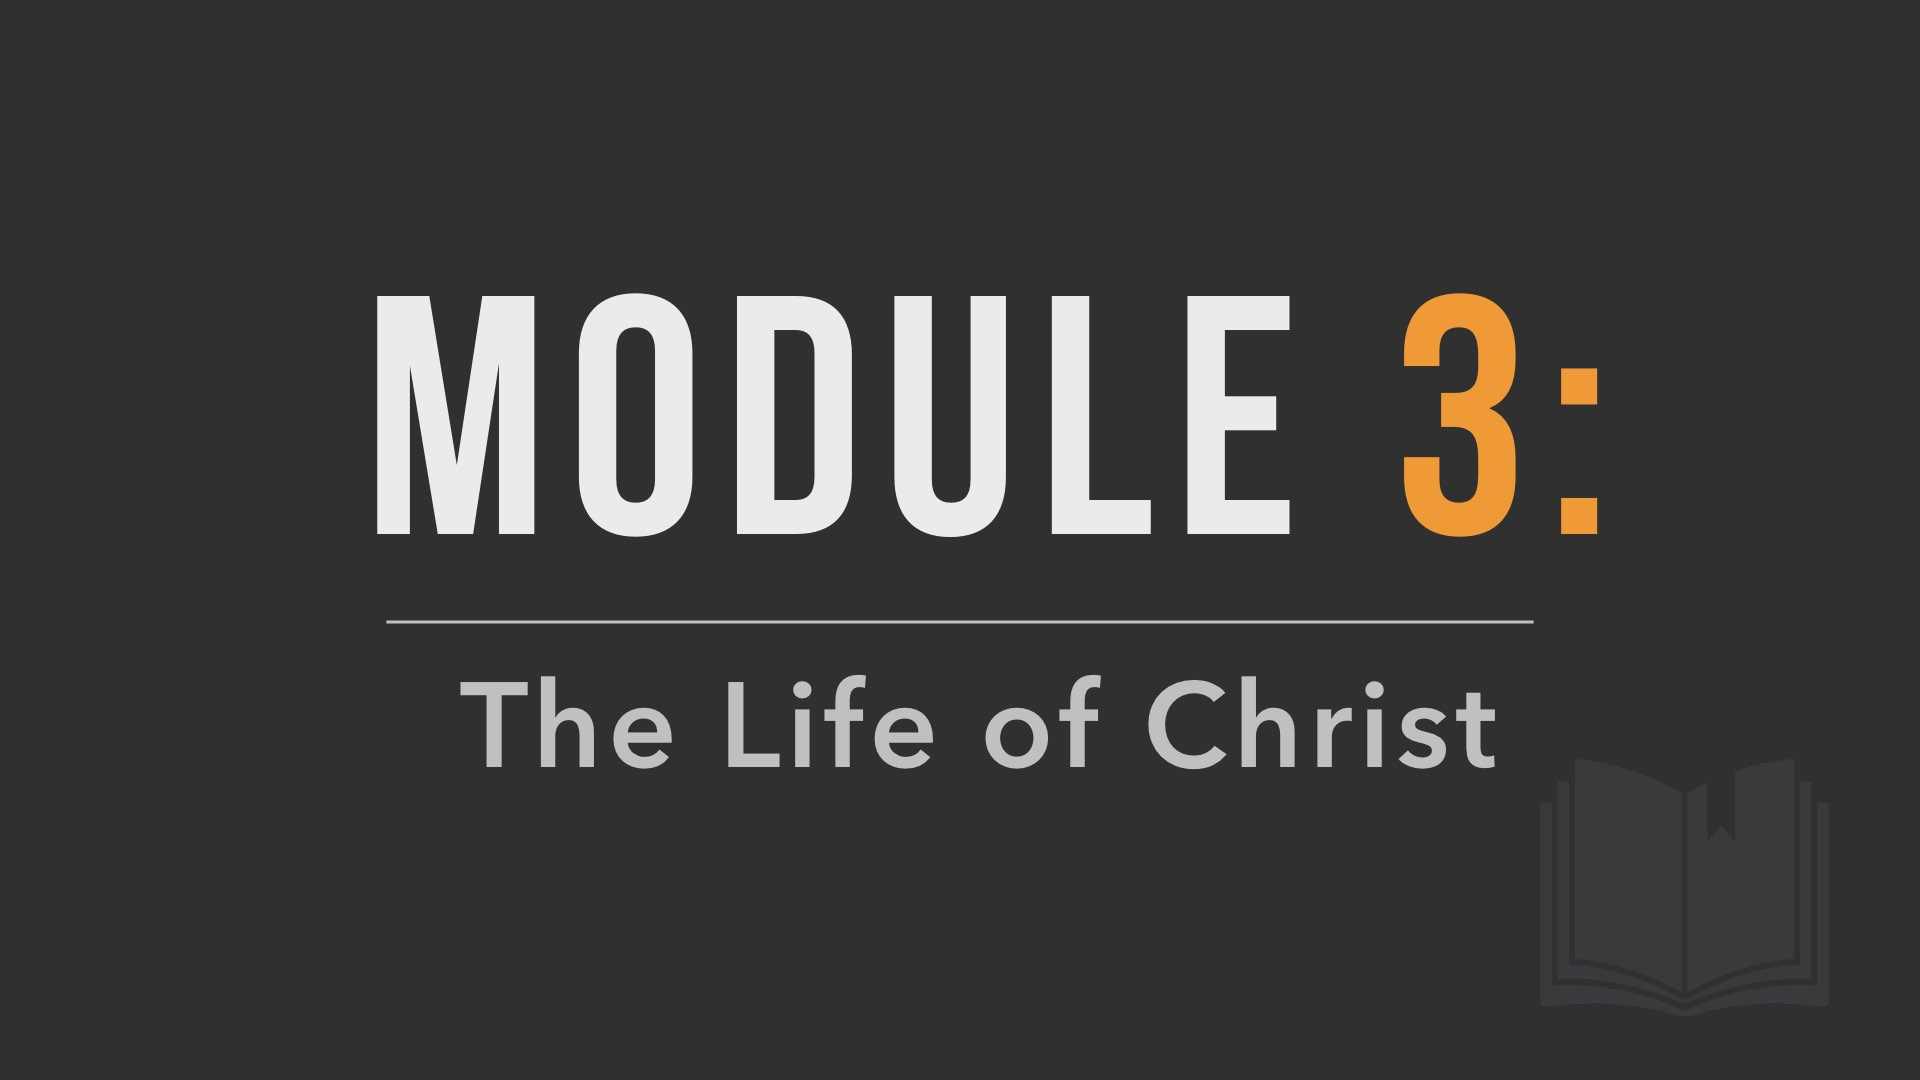 Module 3 Poster Image